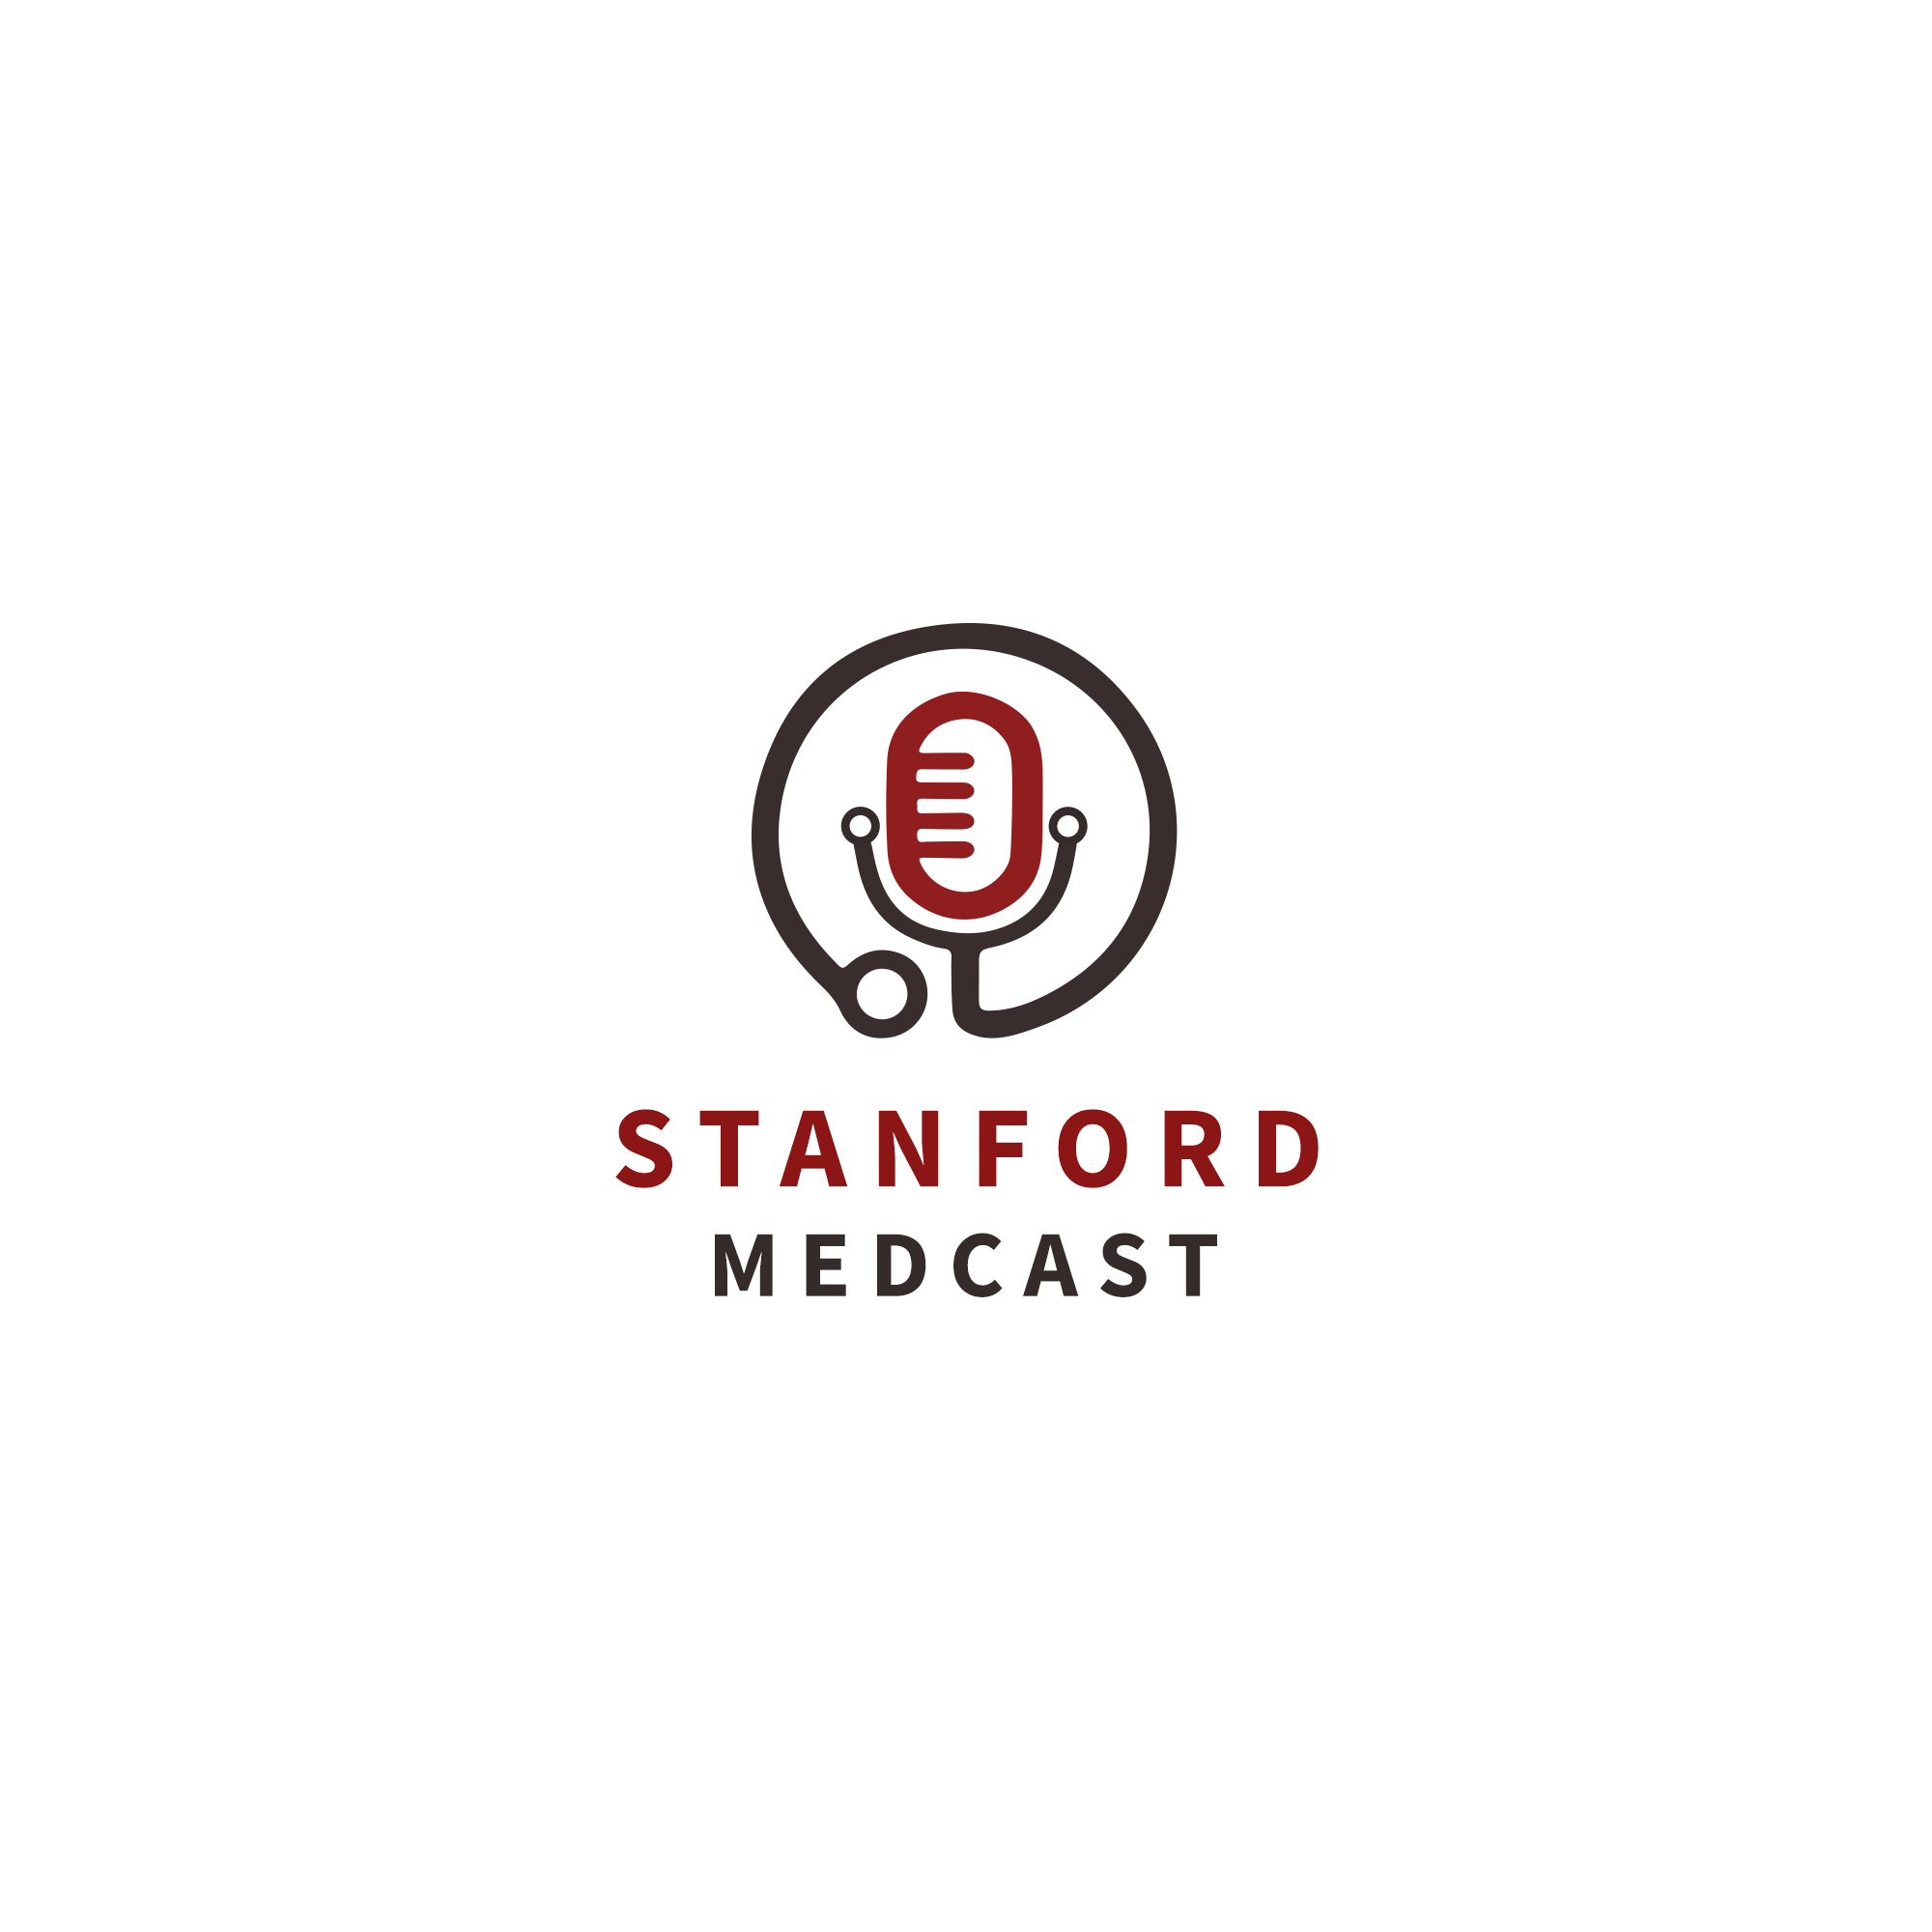 Stanford Medcast Episode 2: COVID-19 Mini-series - Multisystem Inflammatory Syndrome in Children Banner